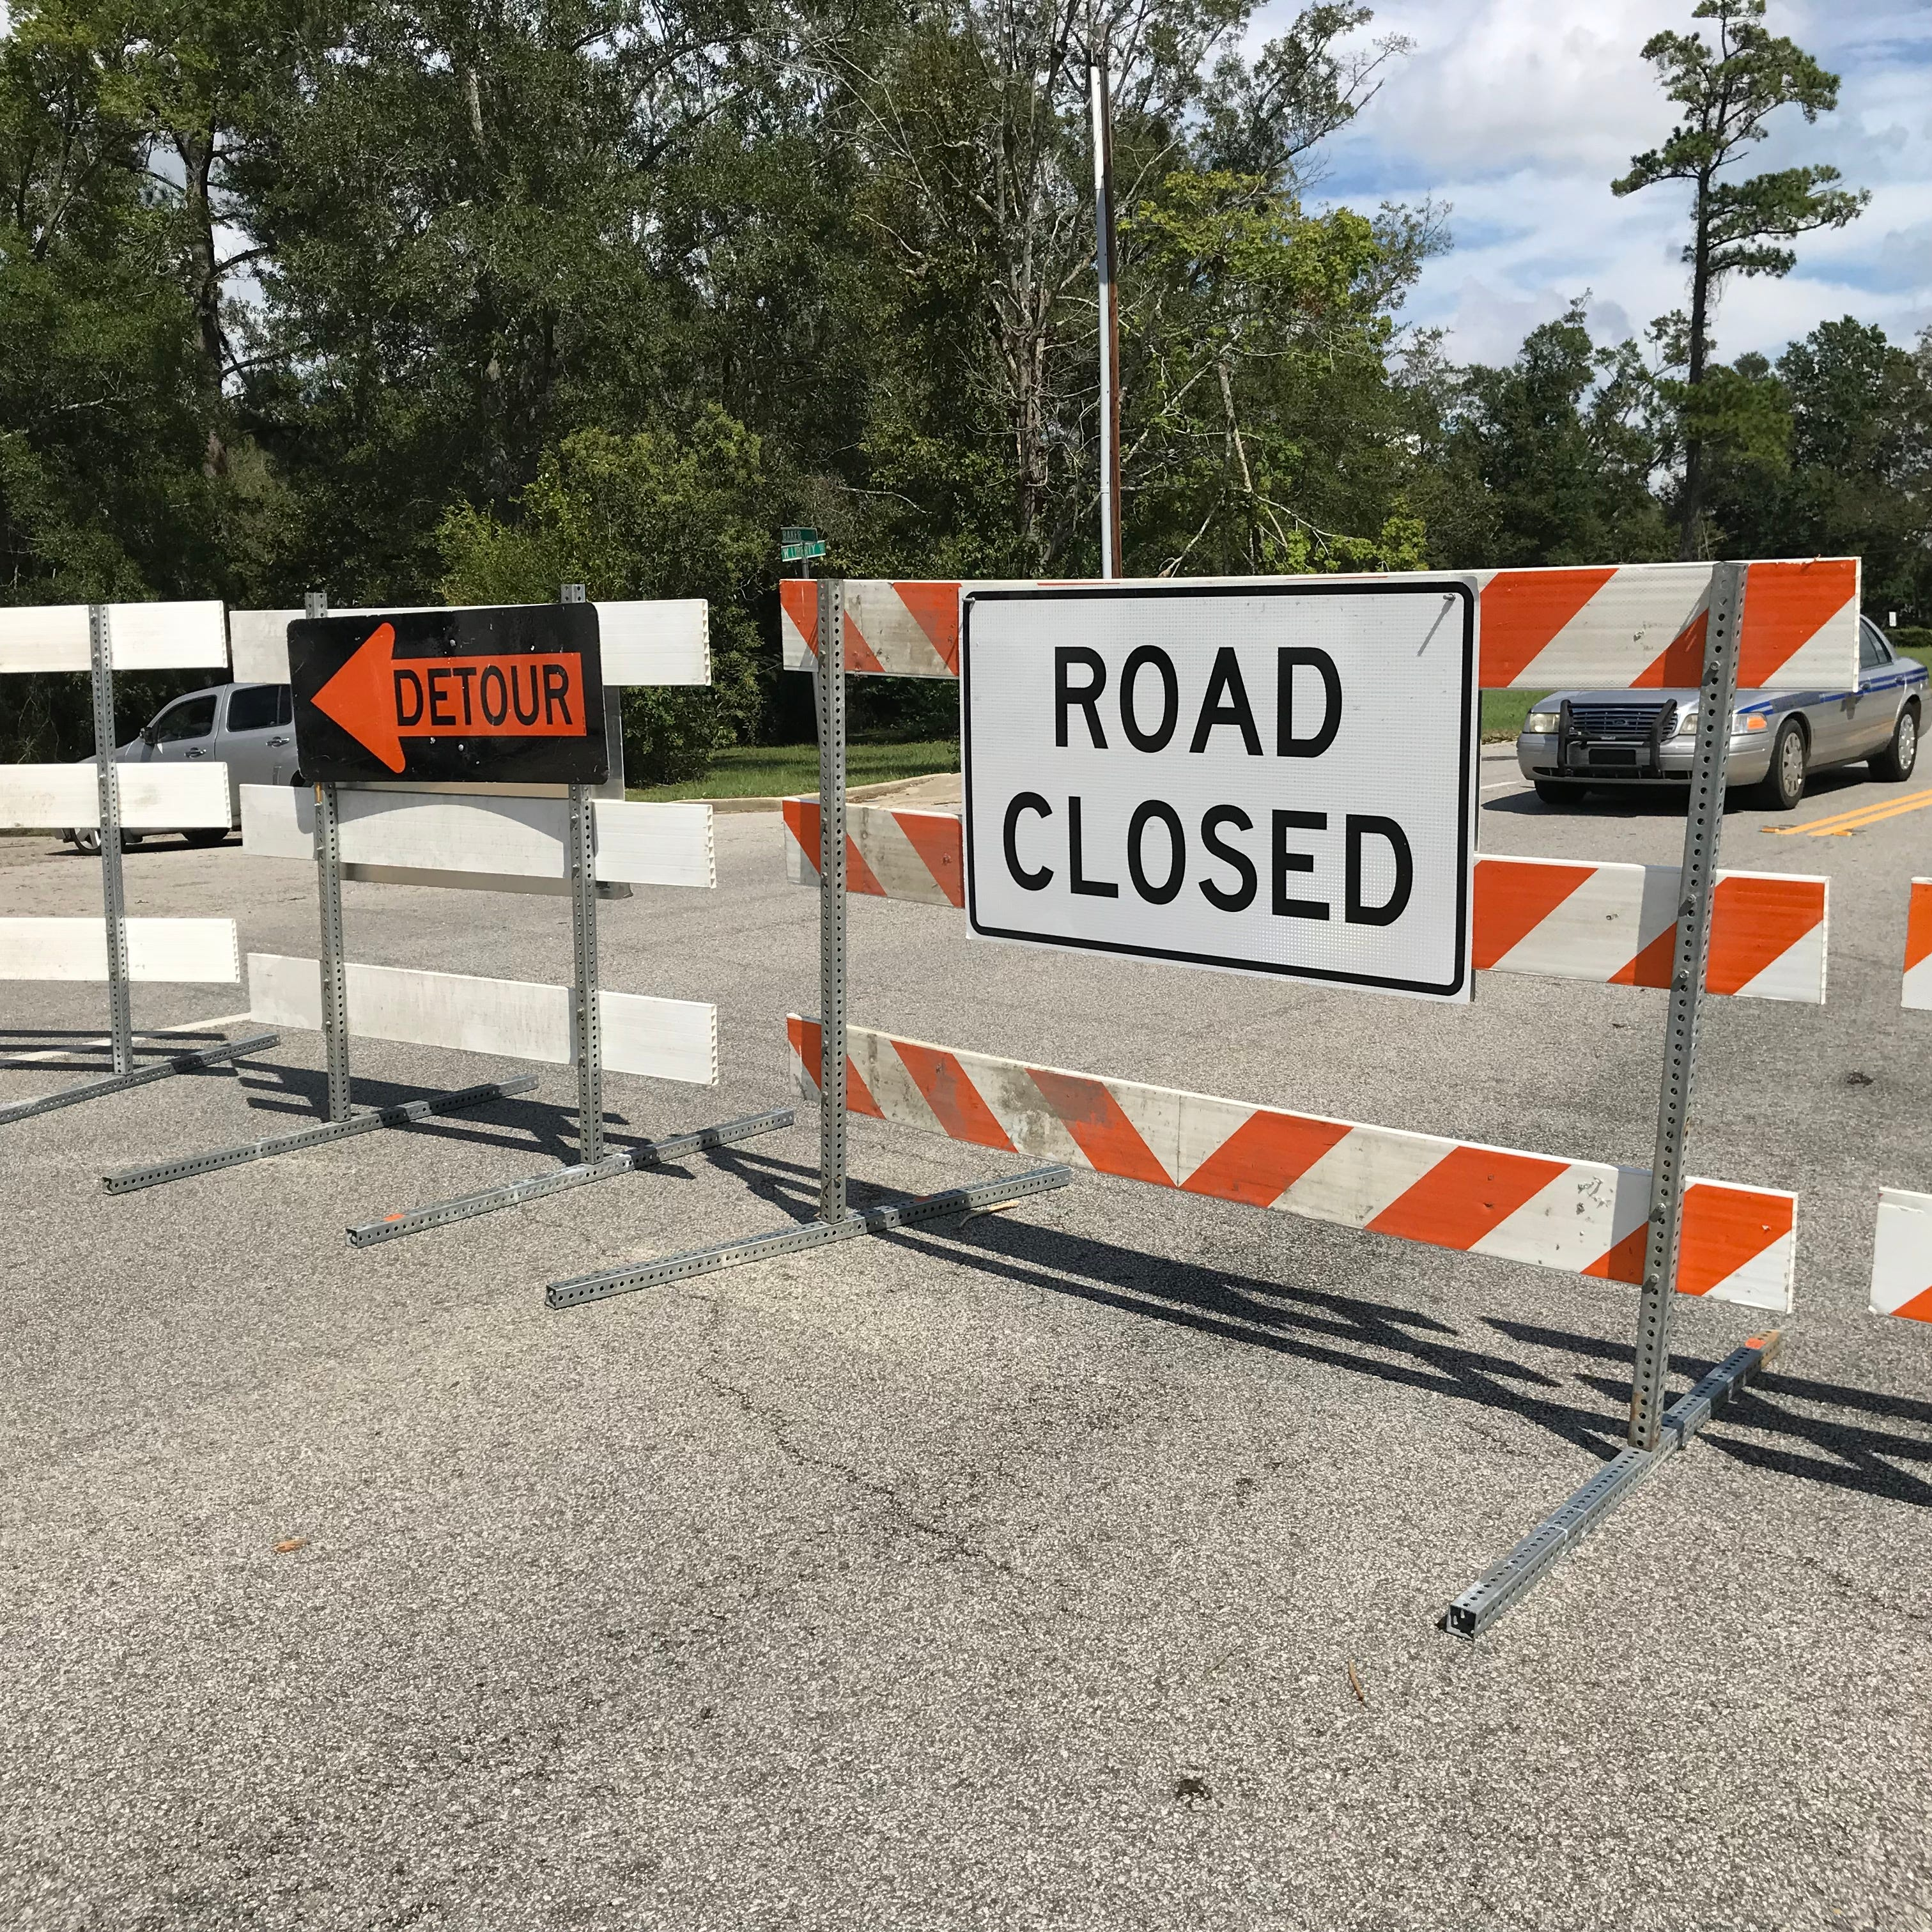 Horry County deputies drove around barricades on flooded highway before women drowned